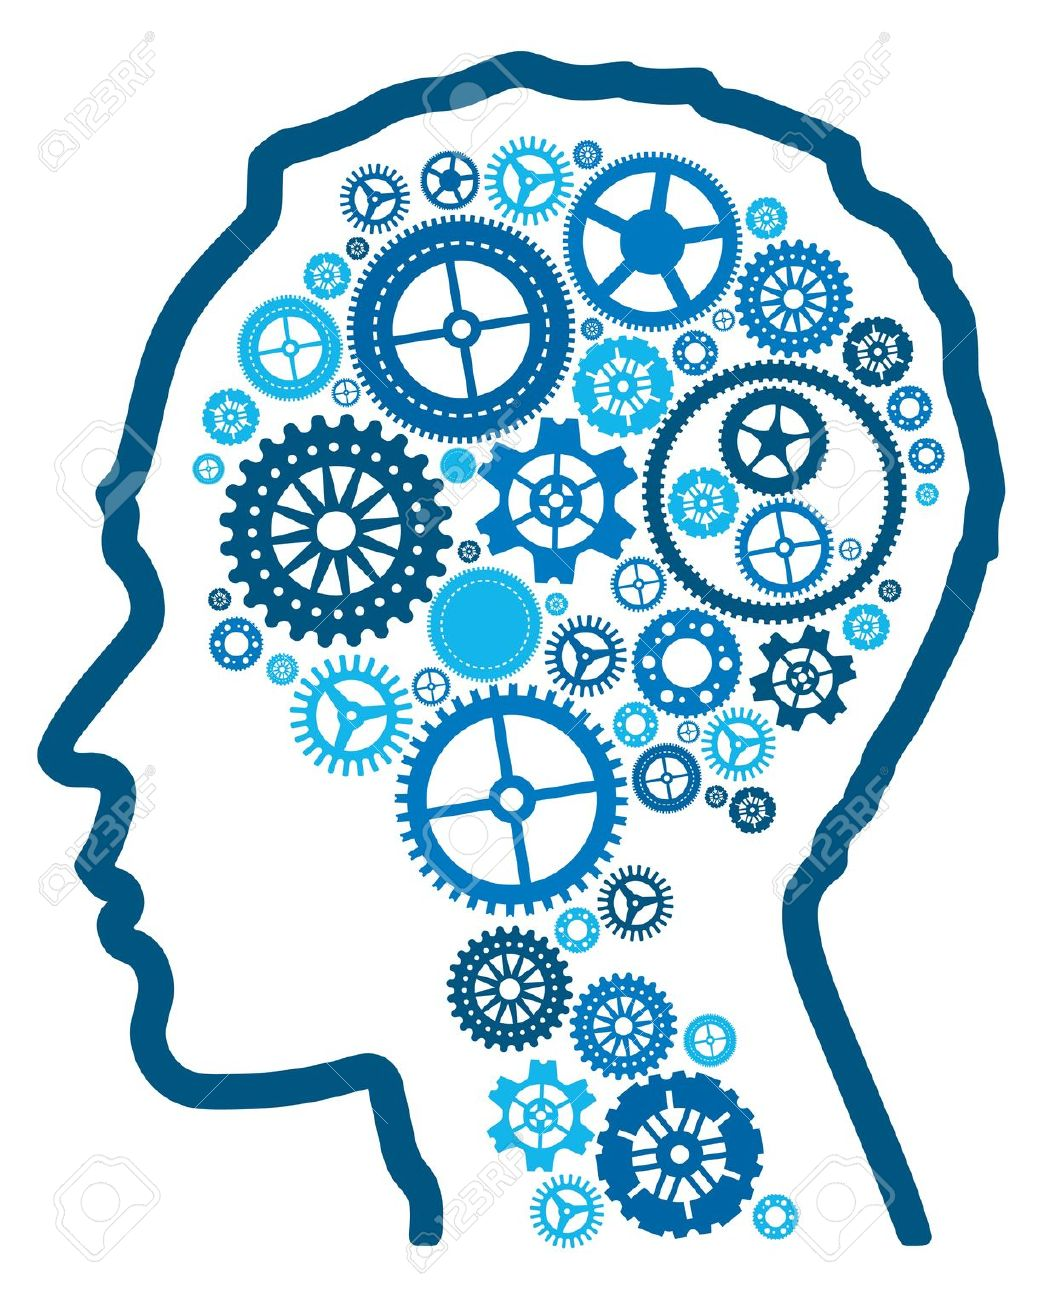 Cognitive Psychology Clipart.